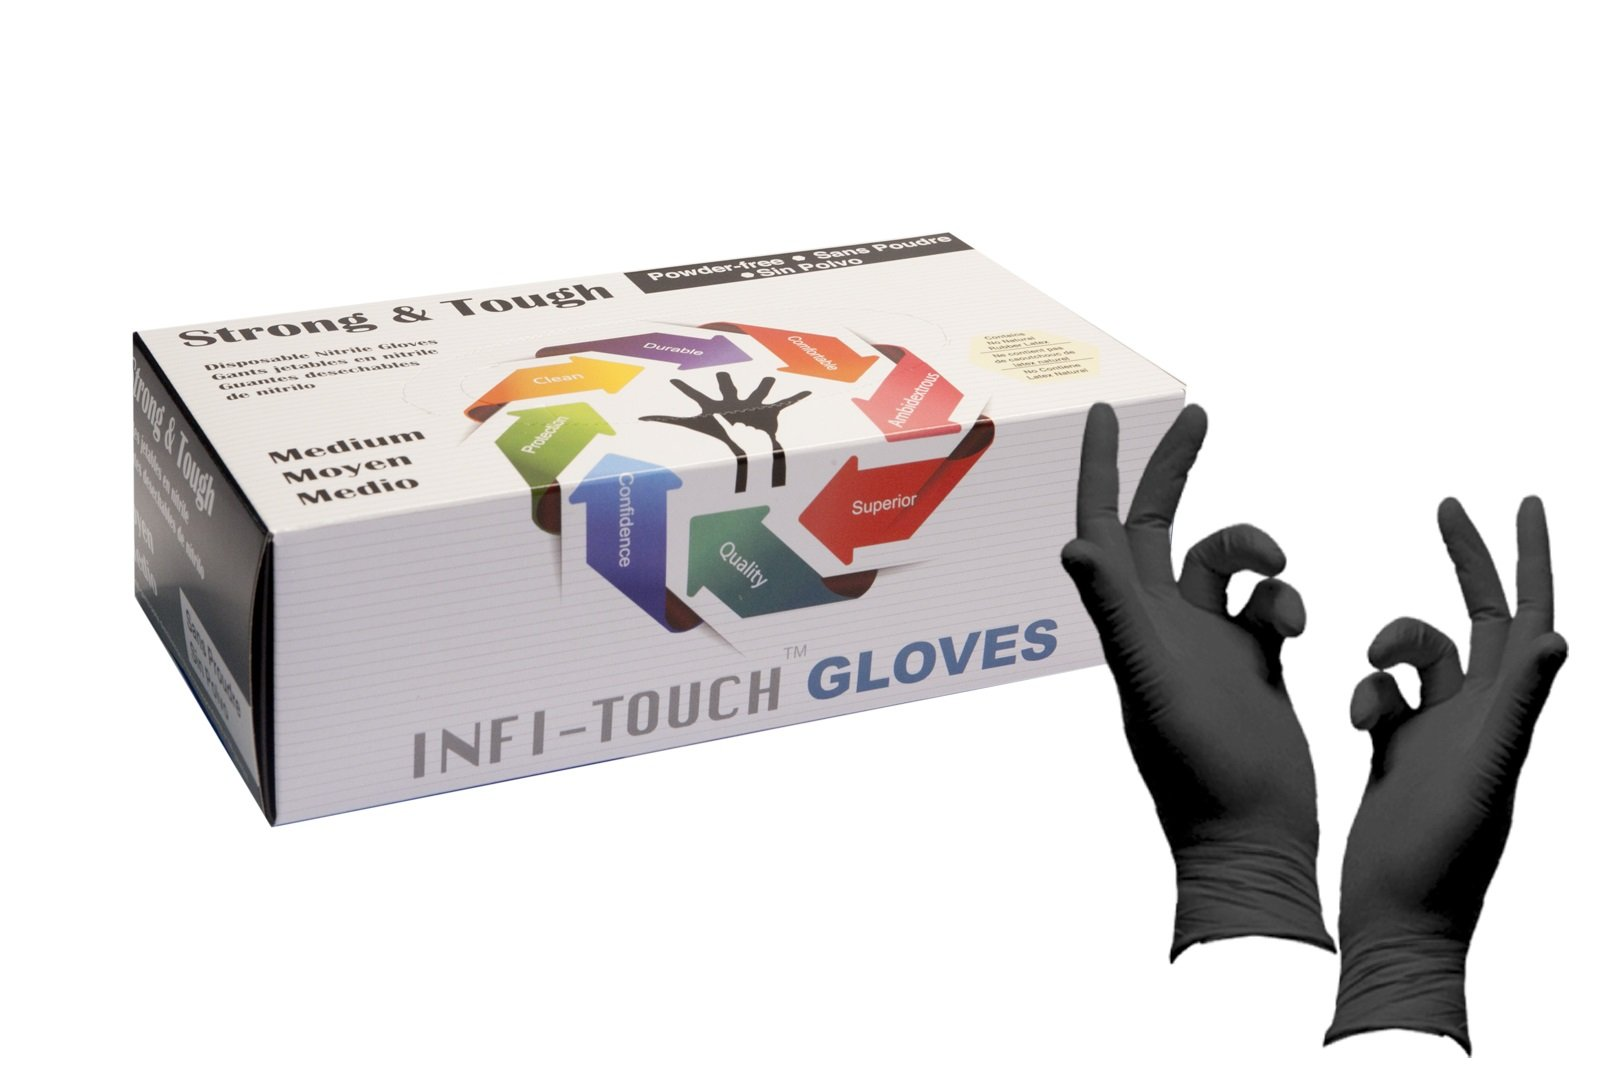 Infi-Touch Heavy Duty Nitrile Gloves, Strong & Tough, High Chemical Resistant, Disposable Gloves, Powder Free, Non Sterile, Ambidextrous, Finger Tip Textured, Dispenser Pack of 100, Size Medium. by Infi-Touch